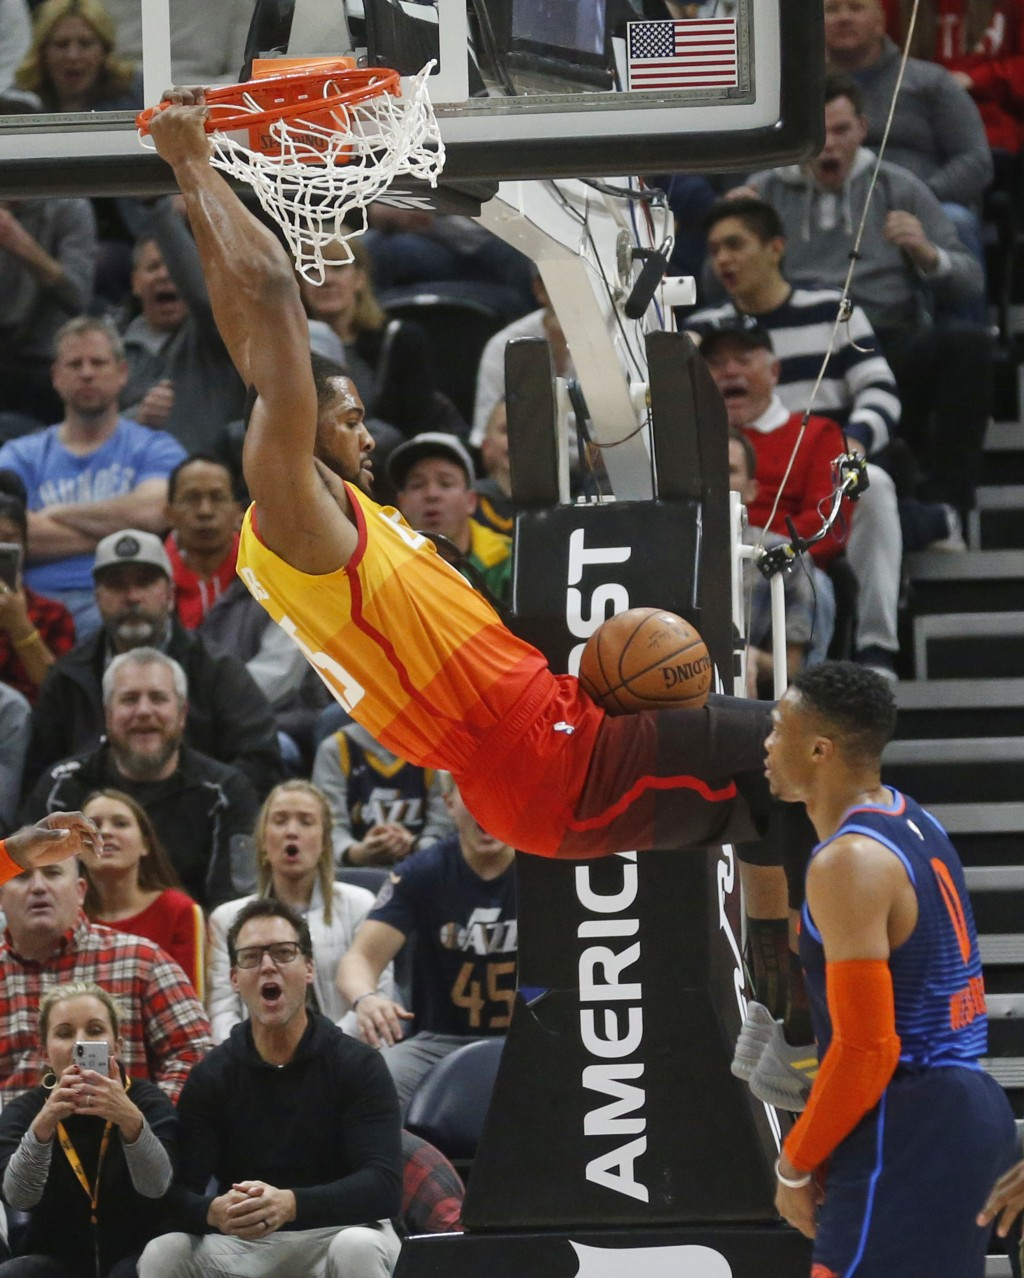 Utah Jazz forward Derrick Favors (15) dunks the ball as Oklahoma City Thunder guard Russell Westbrook (0) looks on in the first half of an NBA basketb...